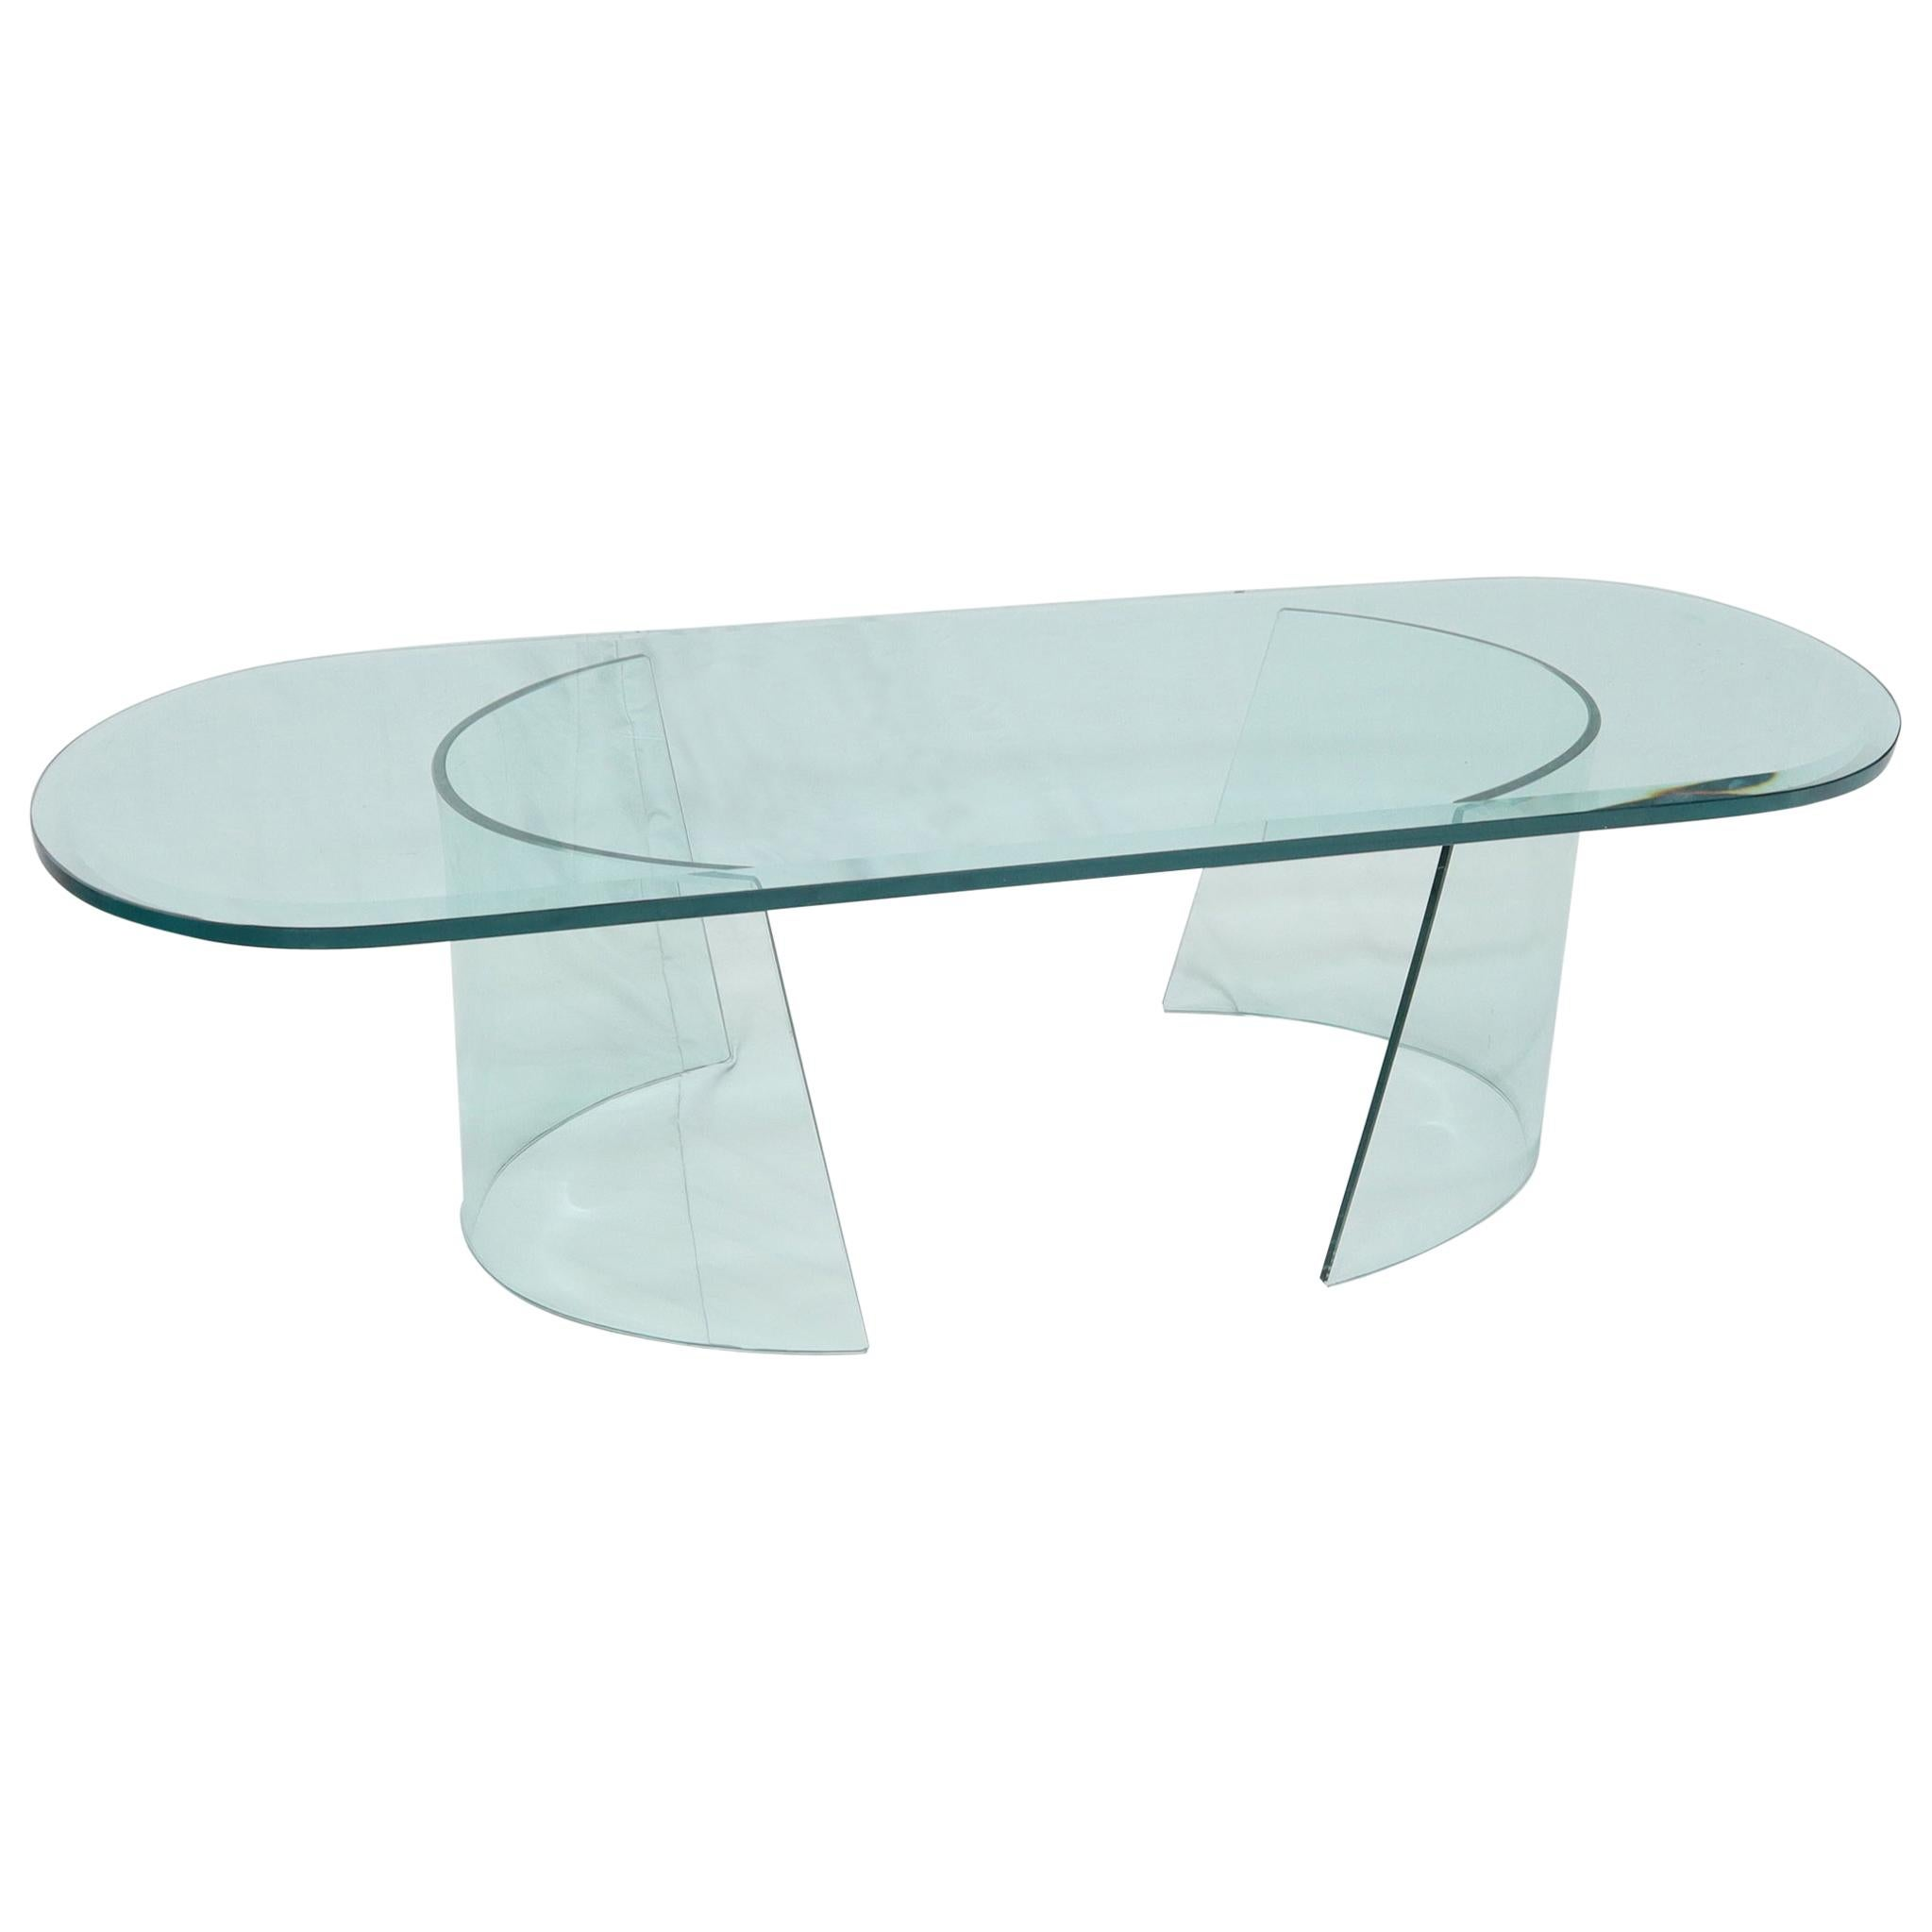 Bent Curved Glass C-Shape Base Oval Racetrack Top Coffee Table